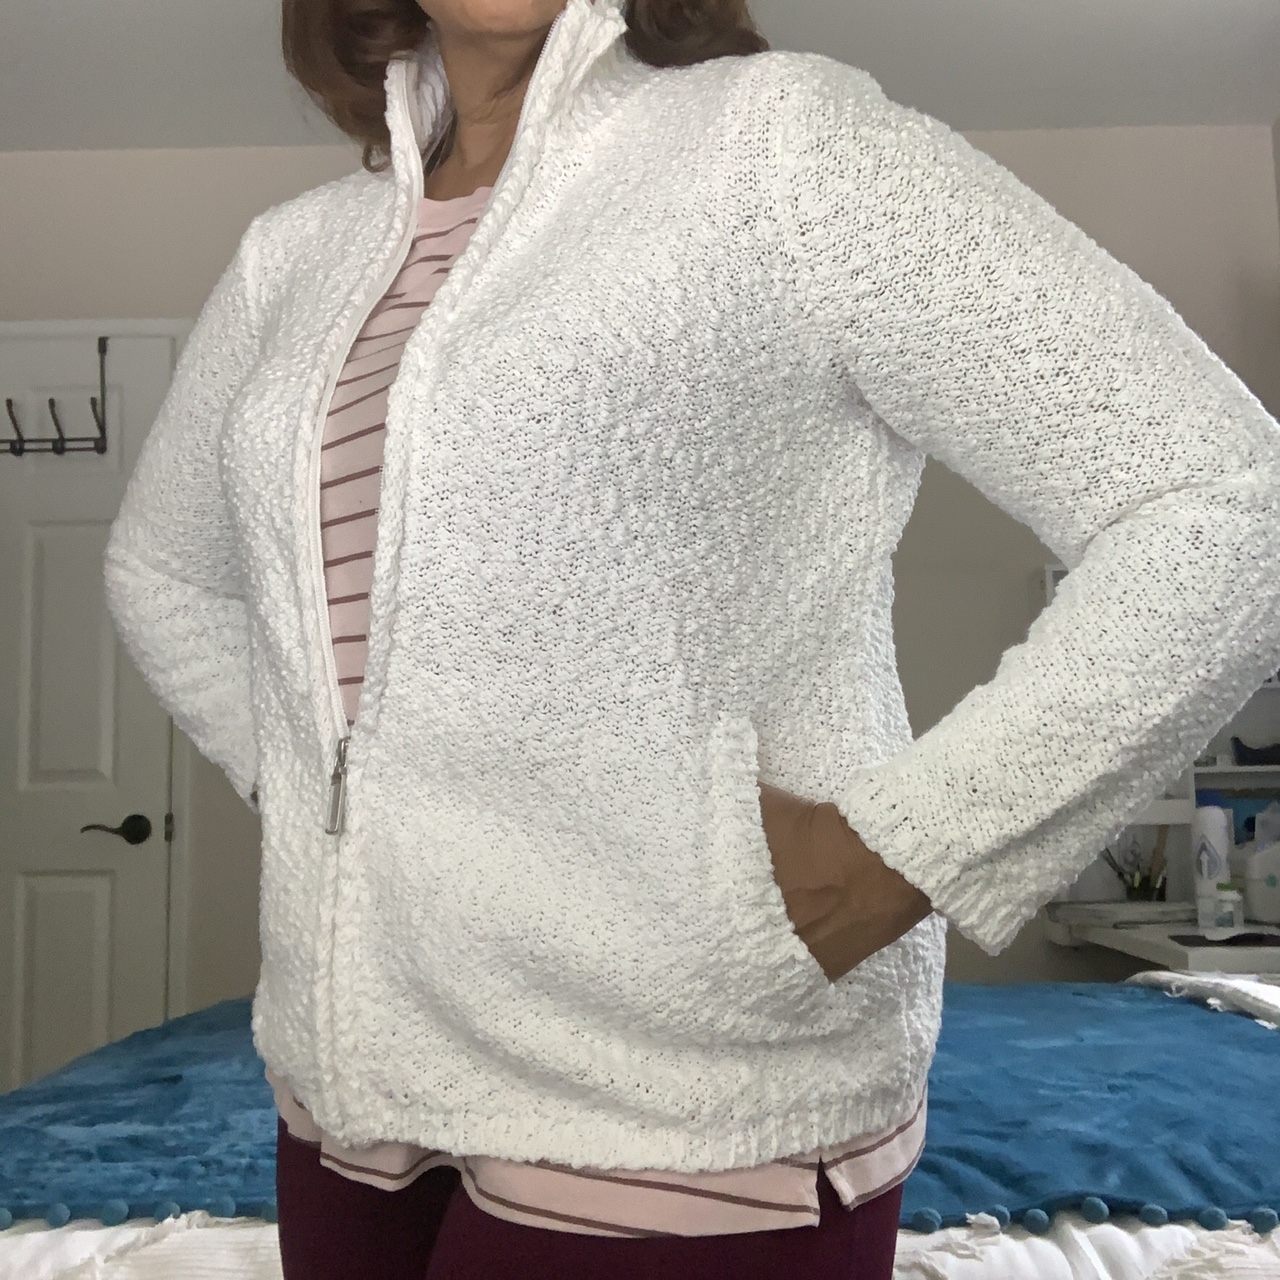 Product Image 1 - Coldwater Creek White Popcorn Knit